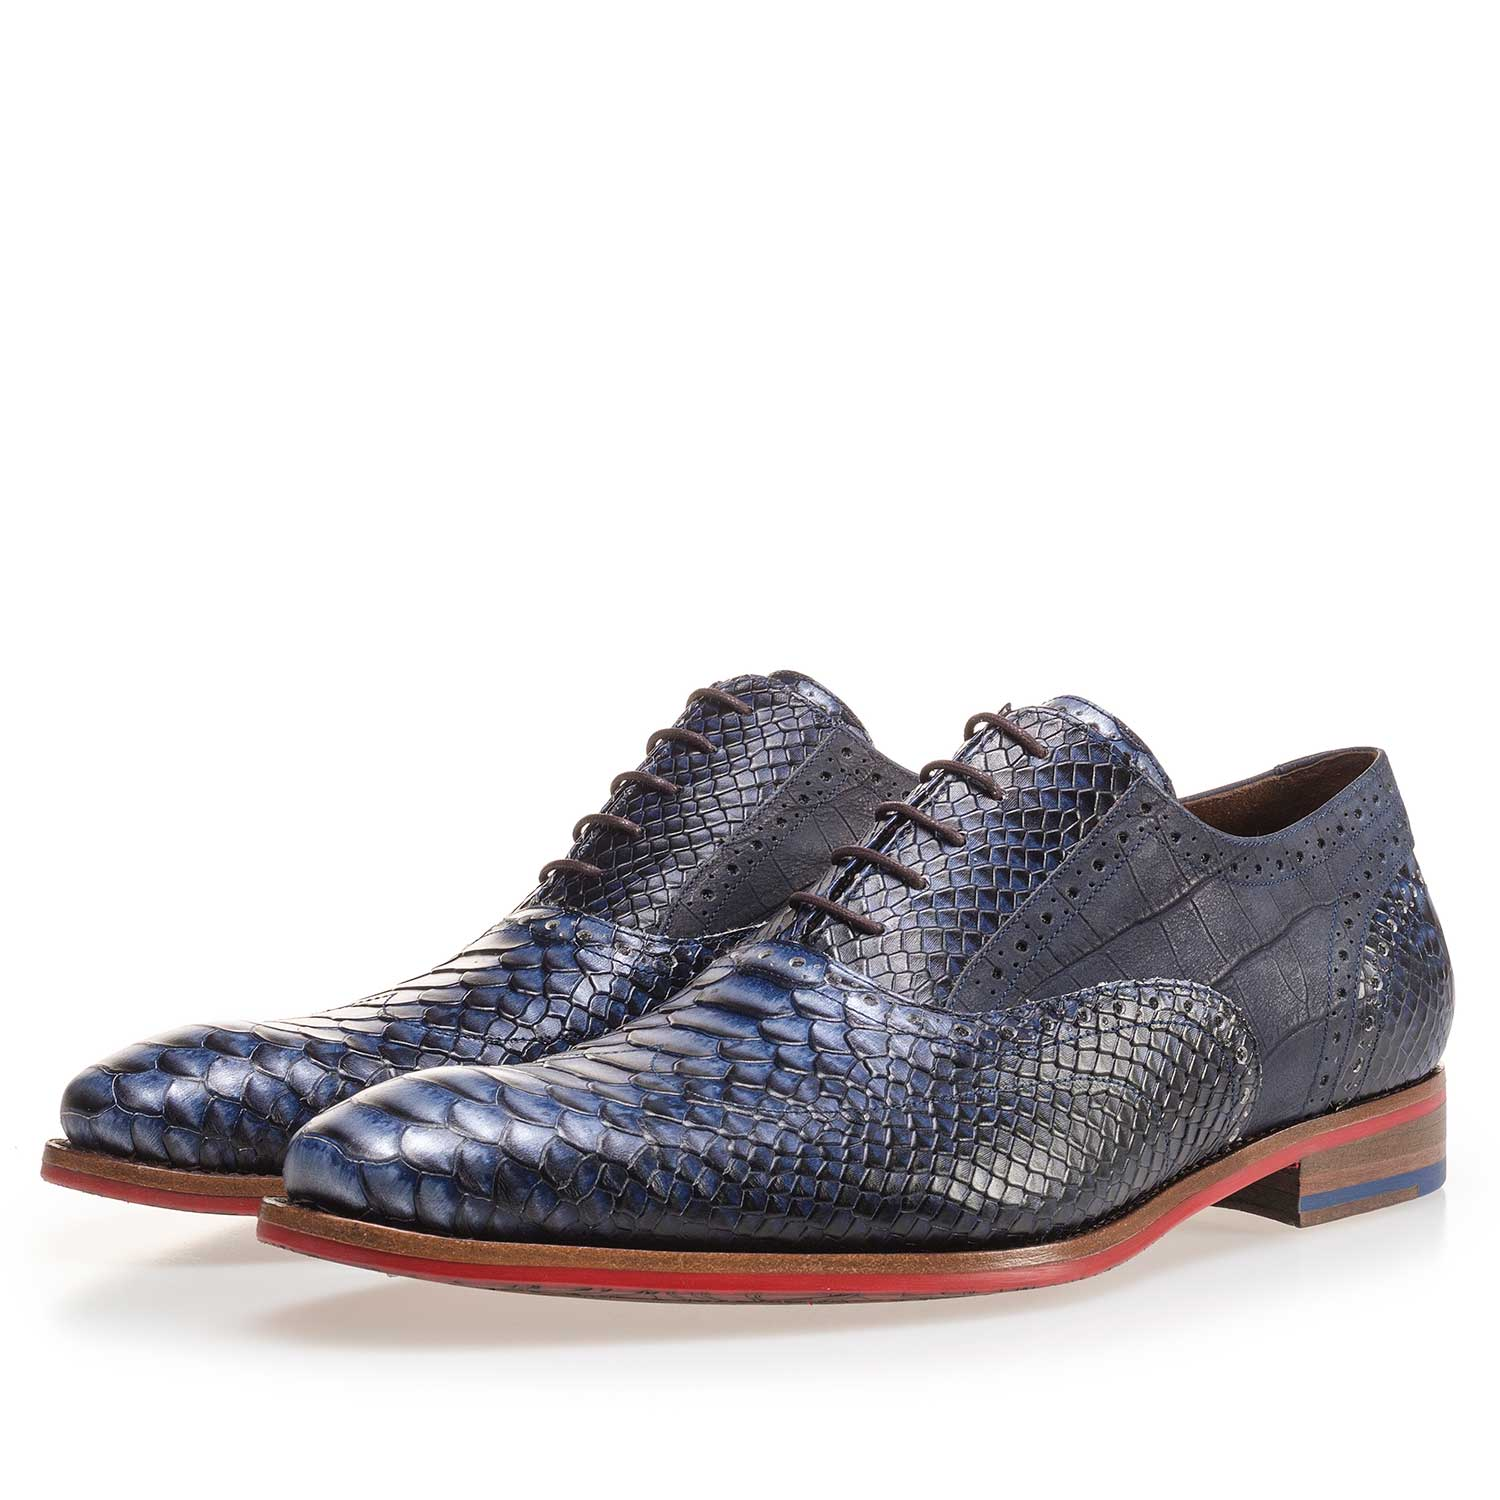 19104/07 - Dark blue leather lace shoe with a snake print